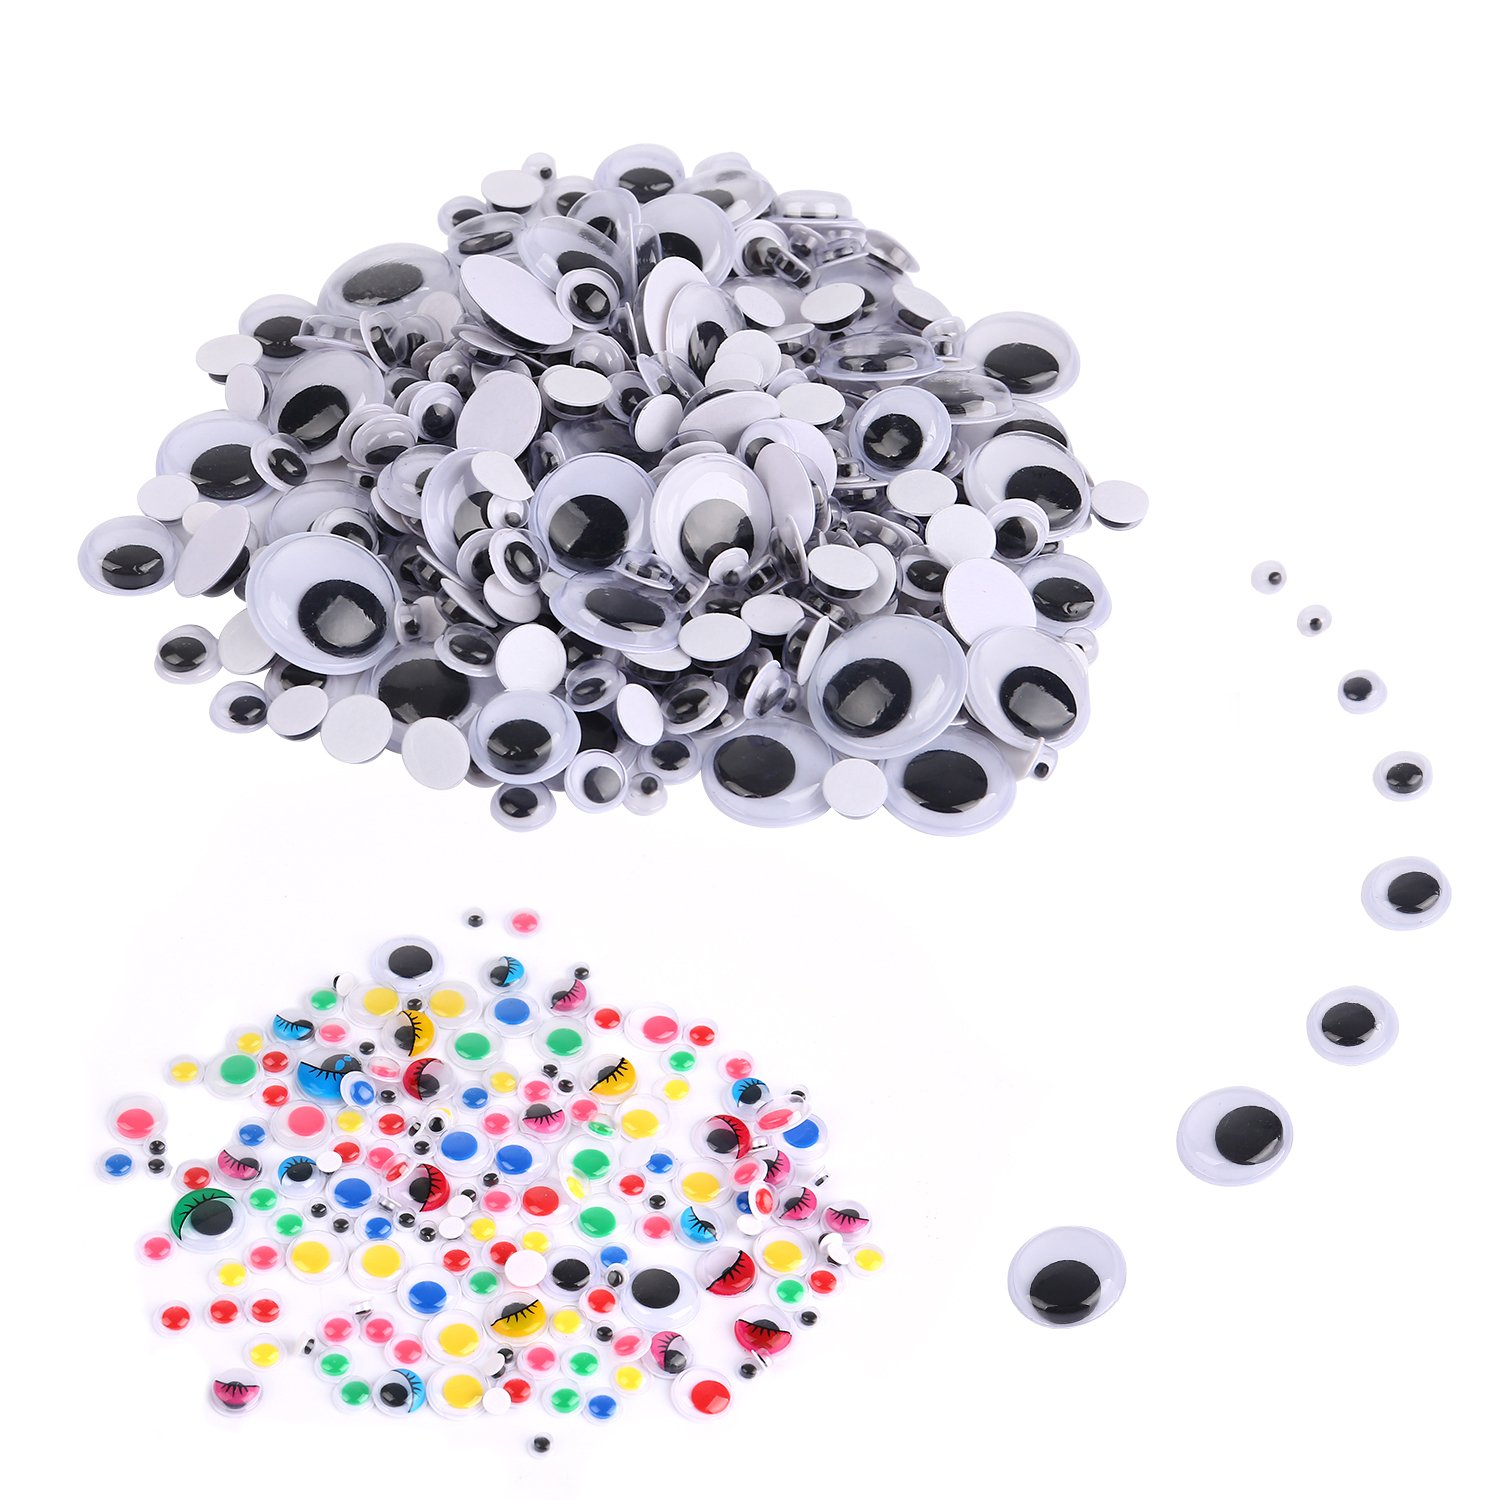 TOAOB 200pcs 35mm Wiggle Googly Eyes with Self-Adhesive Round Black for Crafts Decorations